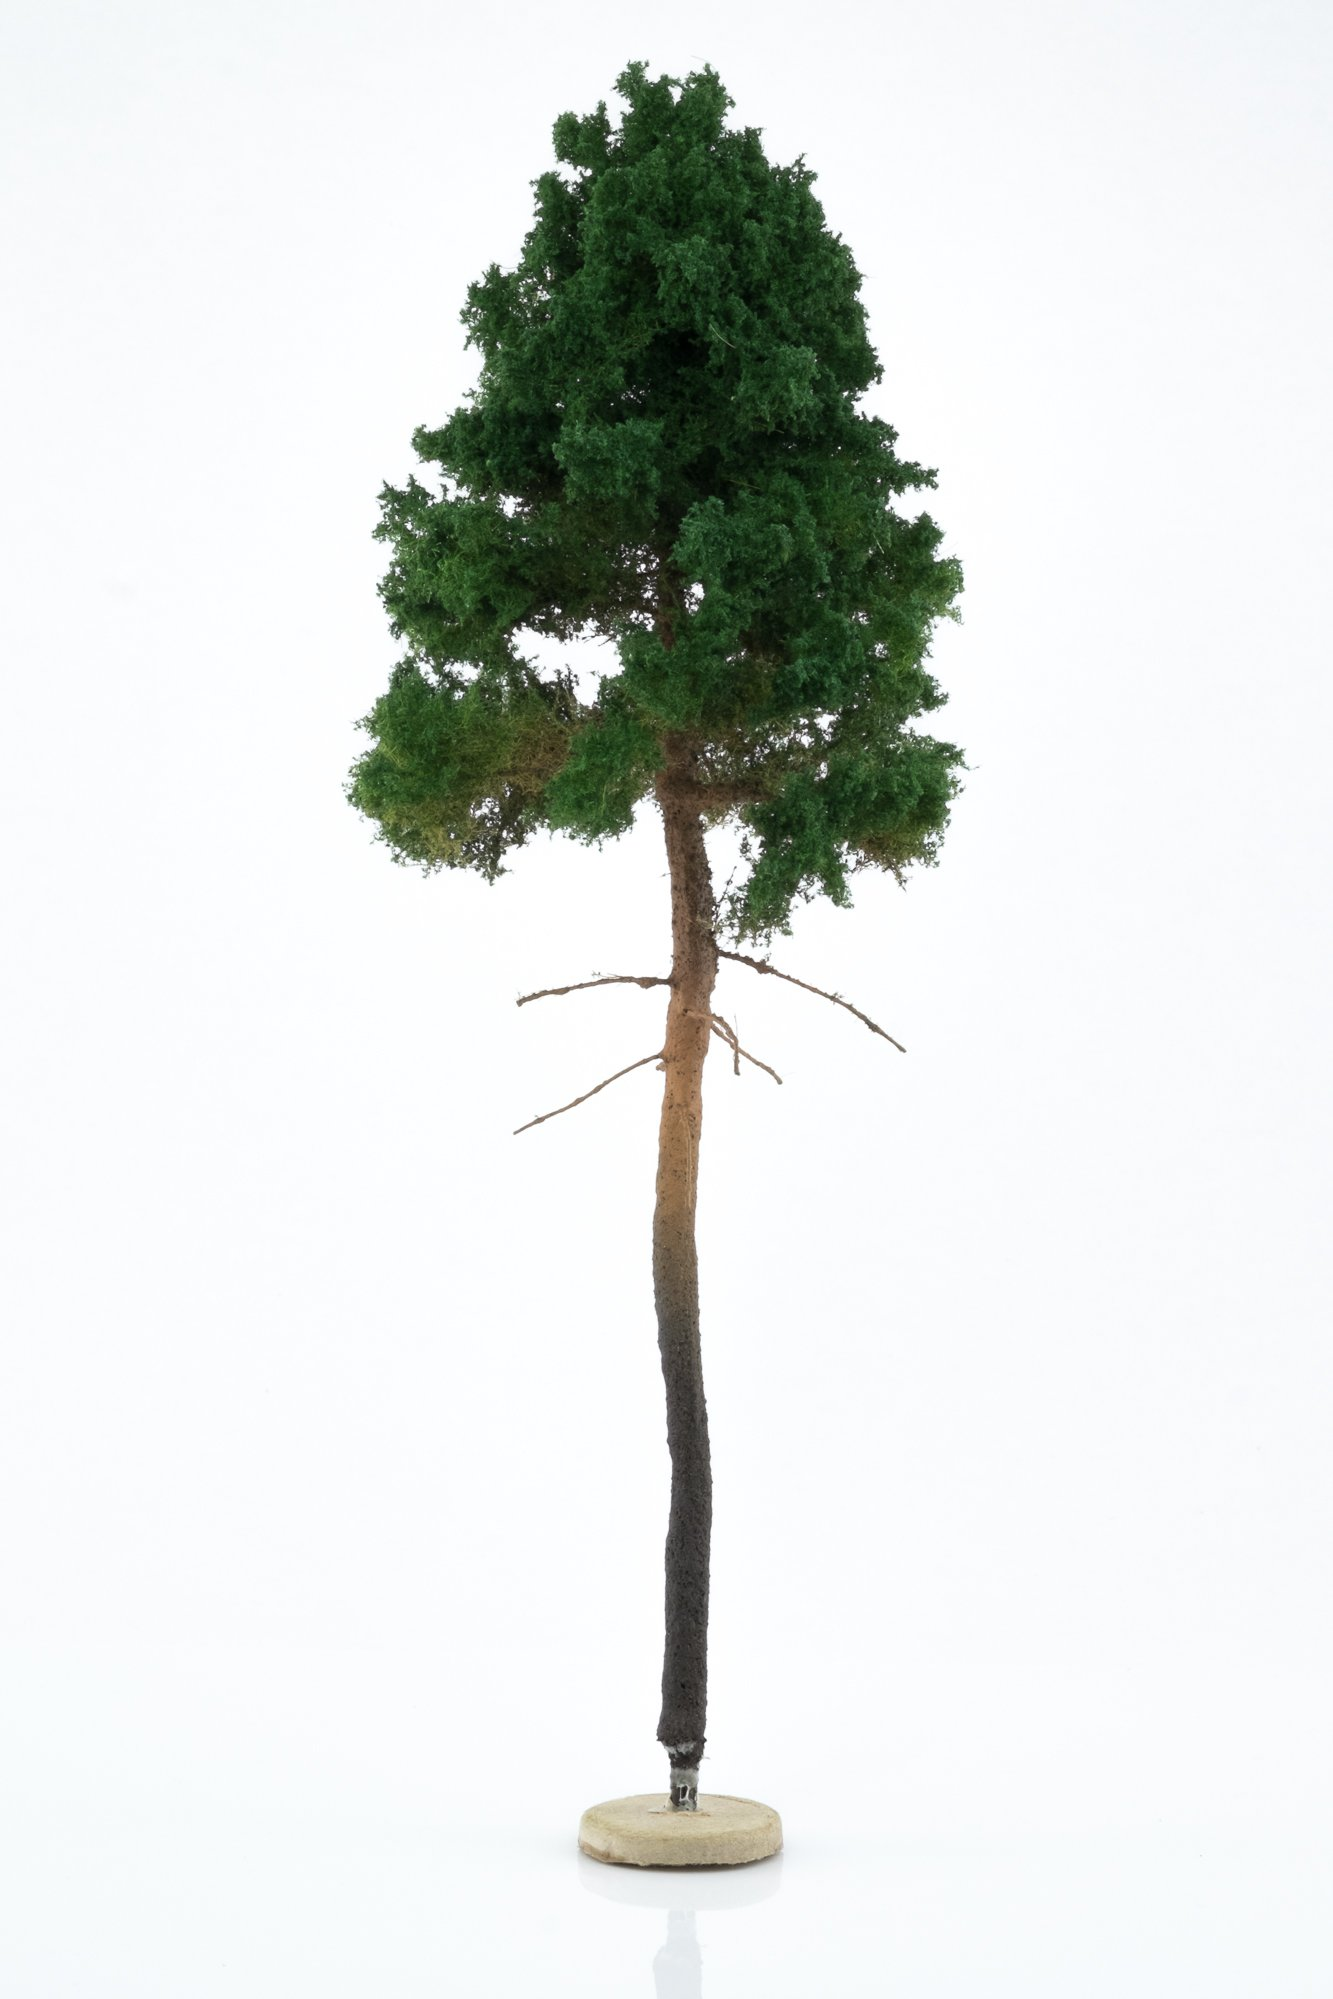 Hand-made, green, young pine tree model. Size between 26 and 28 cm. Made from high quality model supplies by Primo Models.